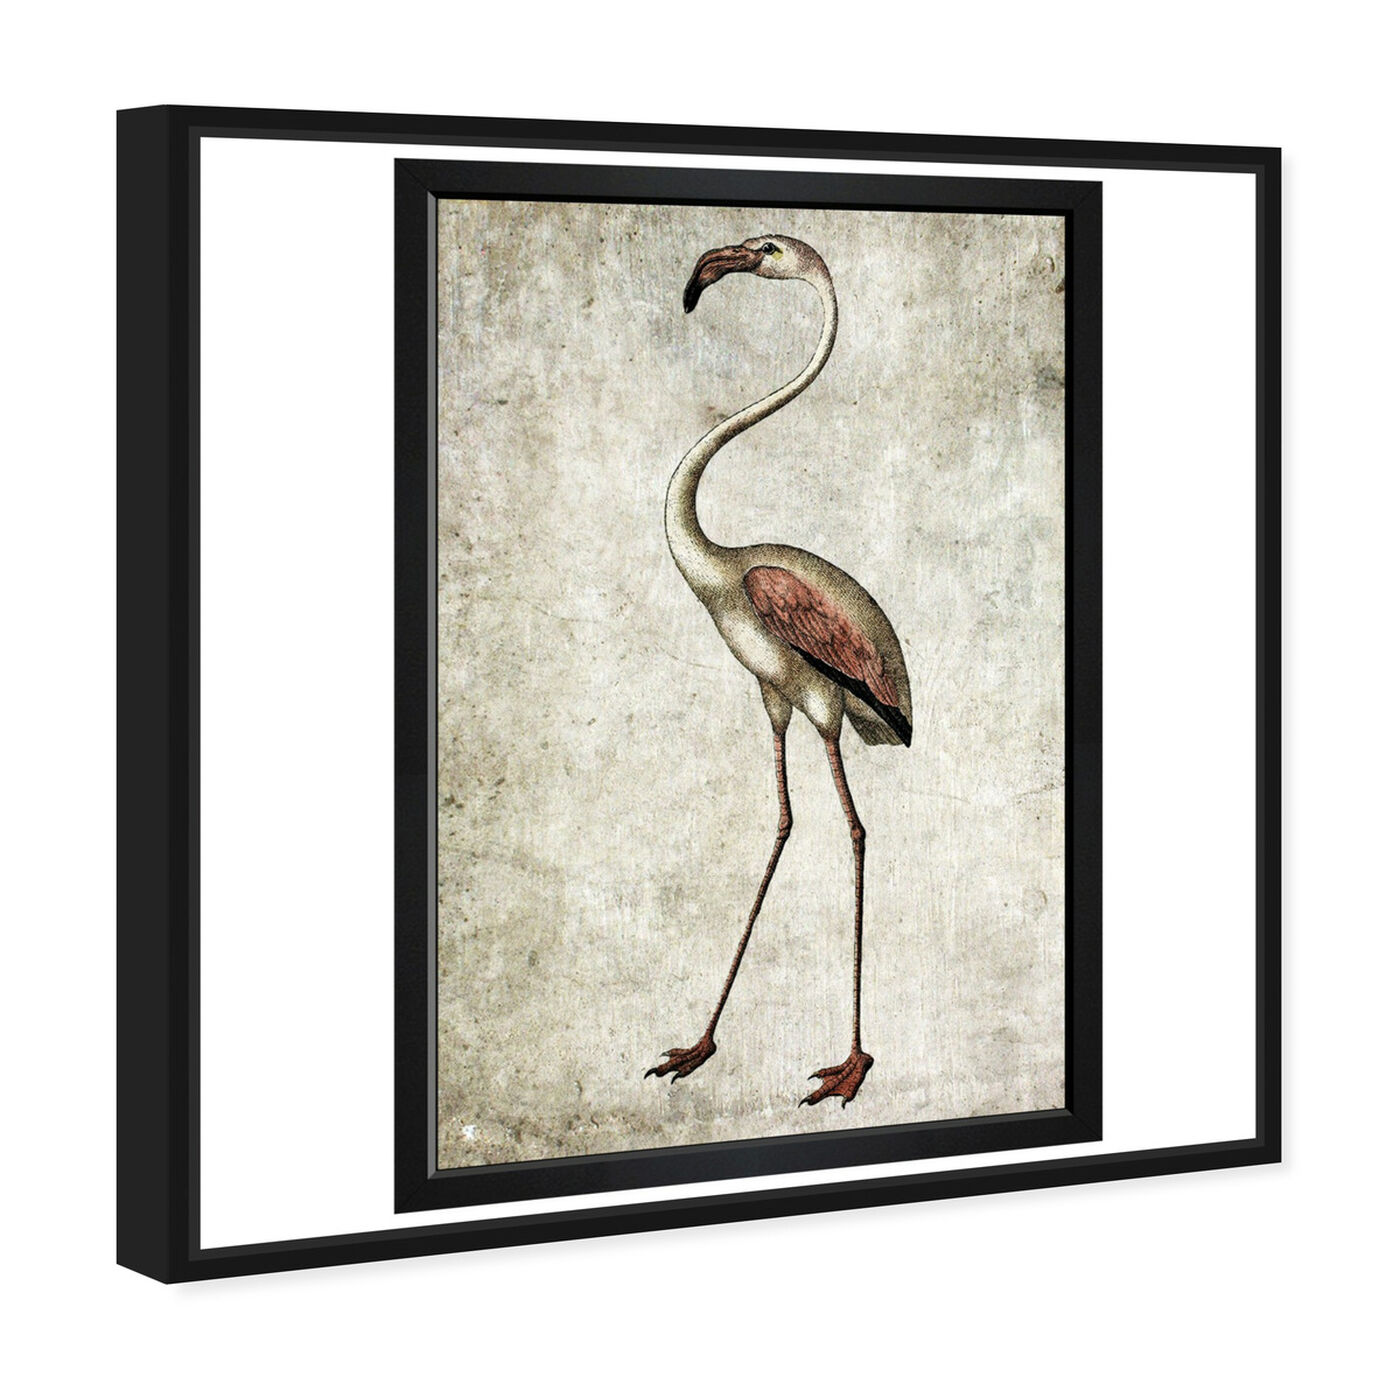 Angled view of Vintage Flamingo featuring animals and birds art.